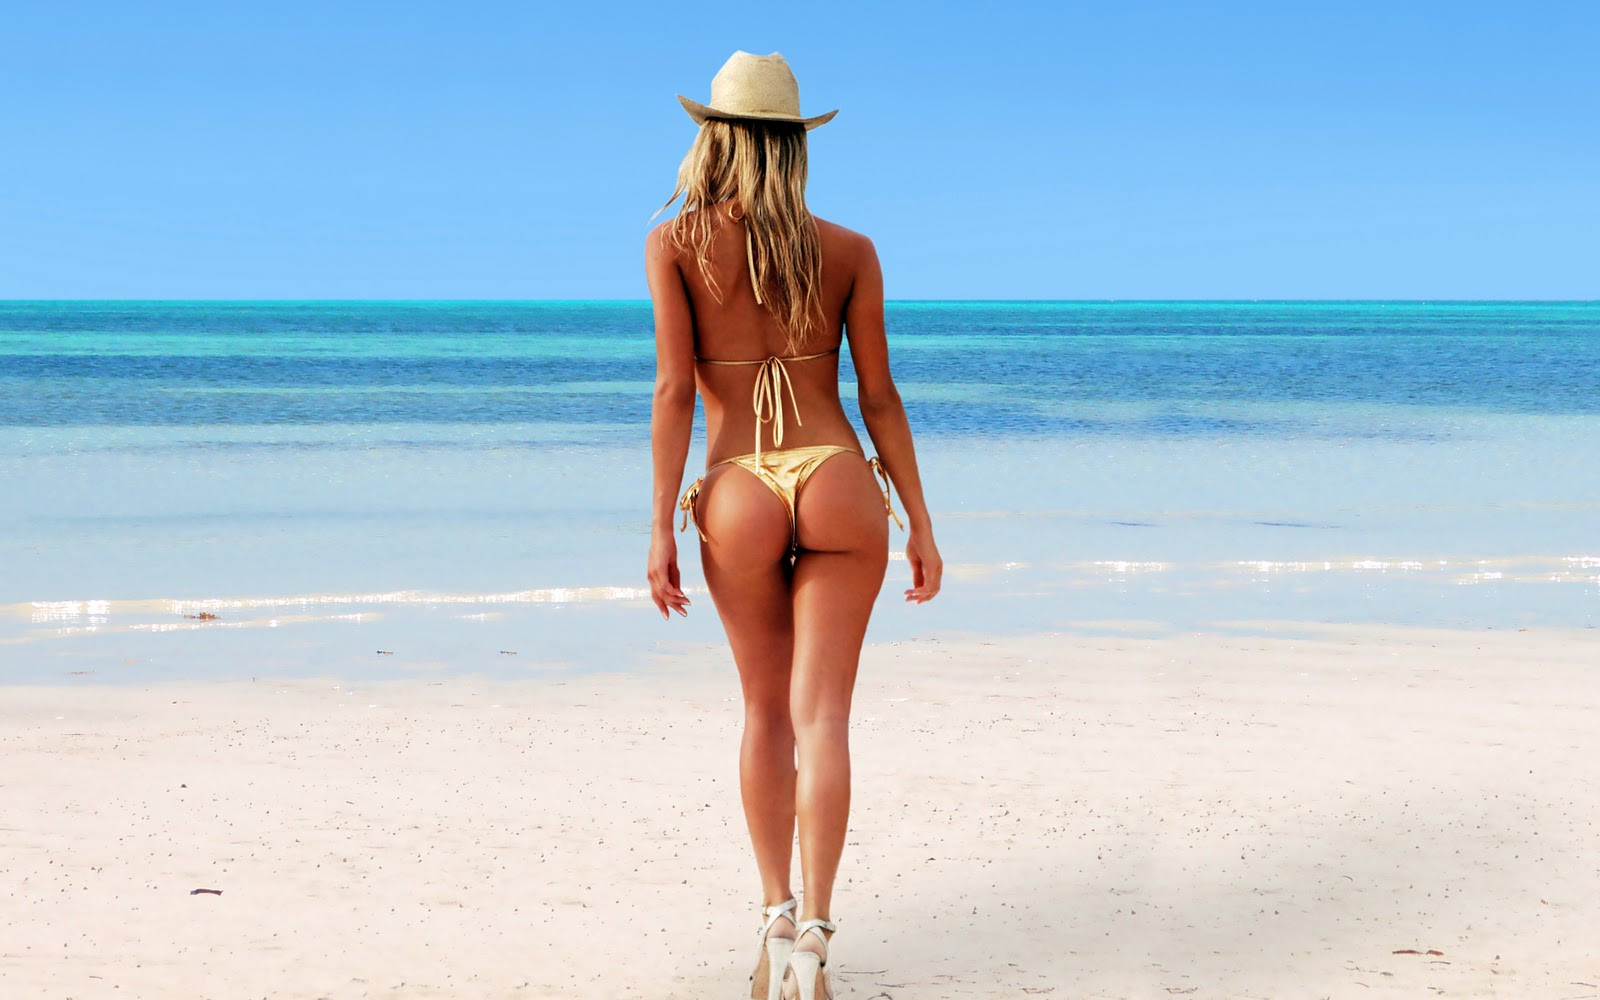 hot ass on beach